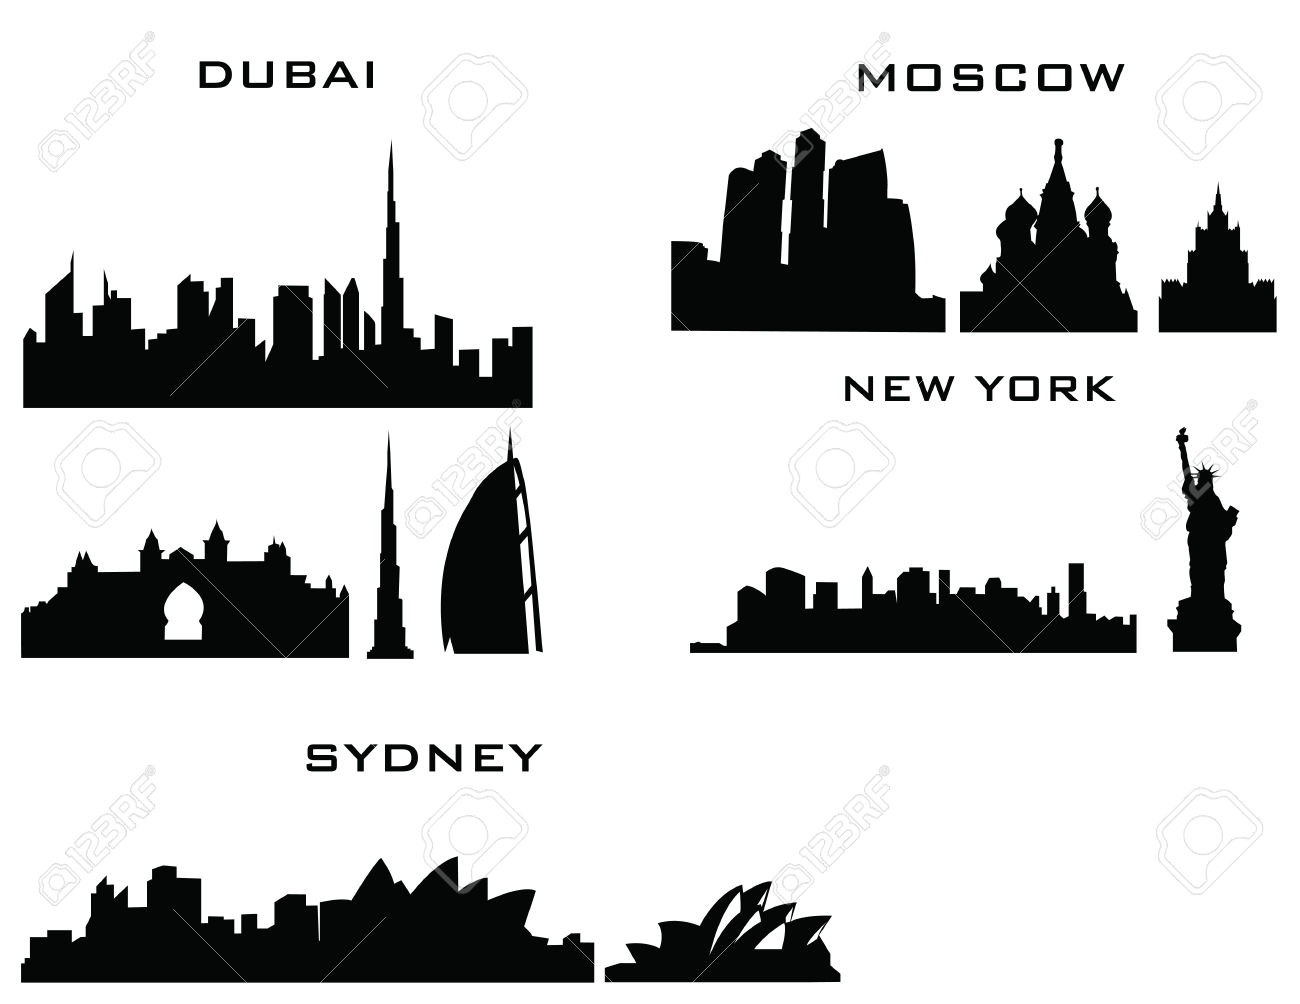 Sillhouette Of Cities New York Sydney Dubai Moscow Royalty Free.